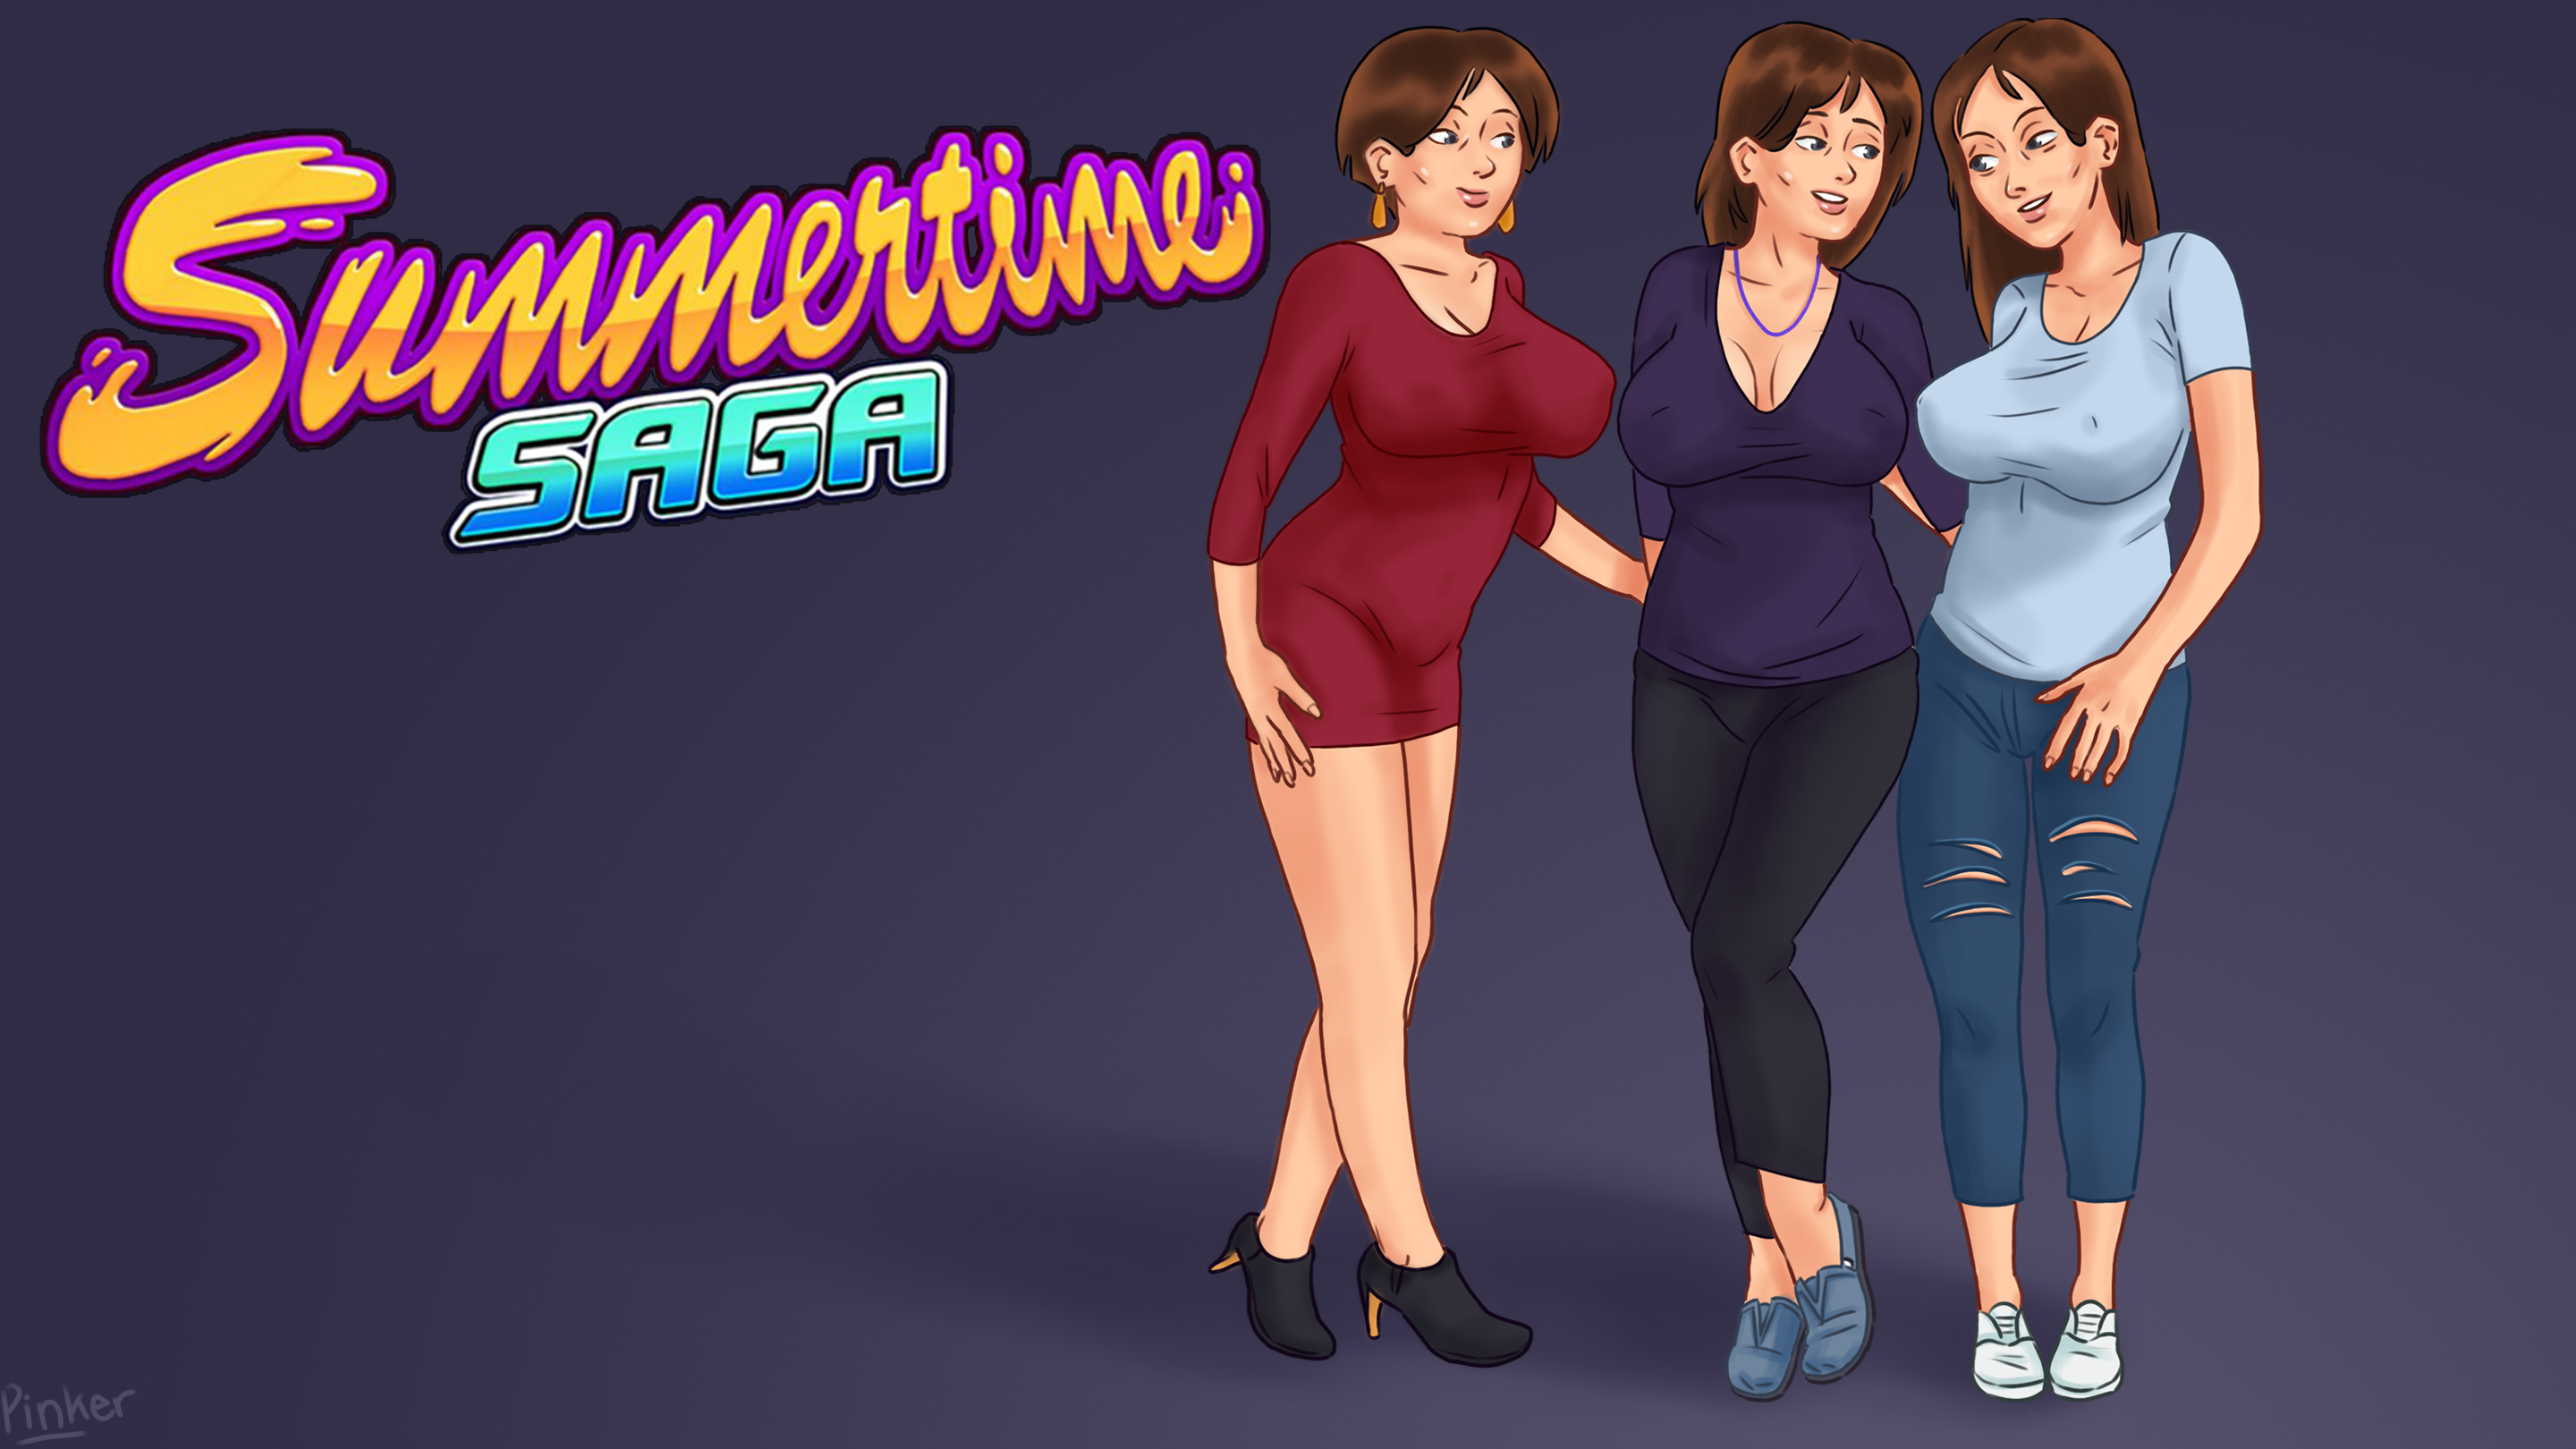 summertime saga game download for pc